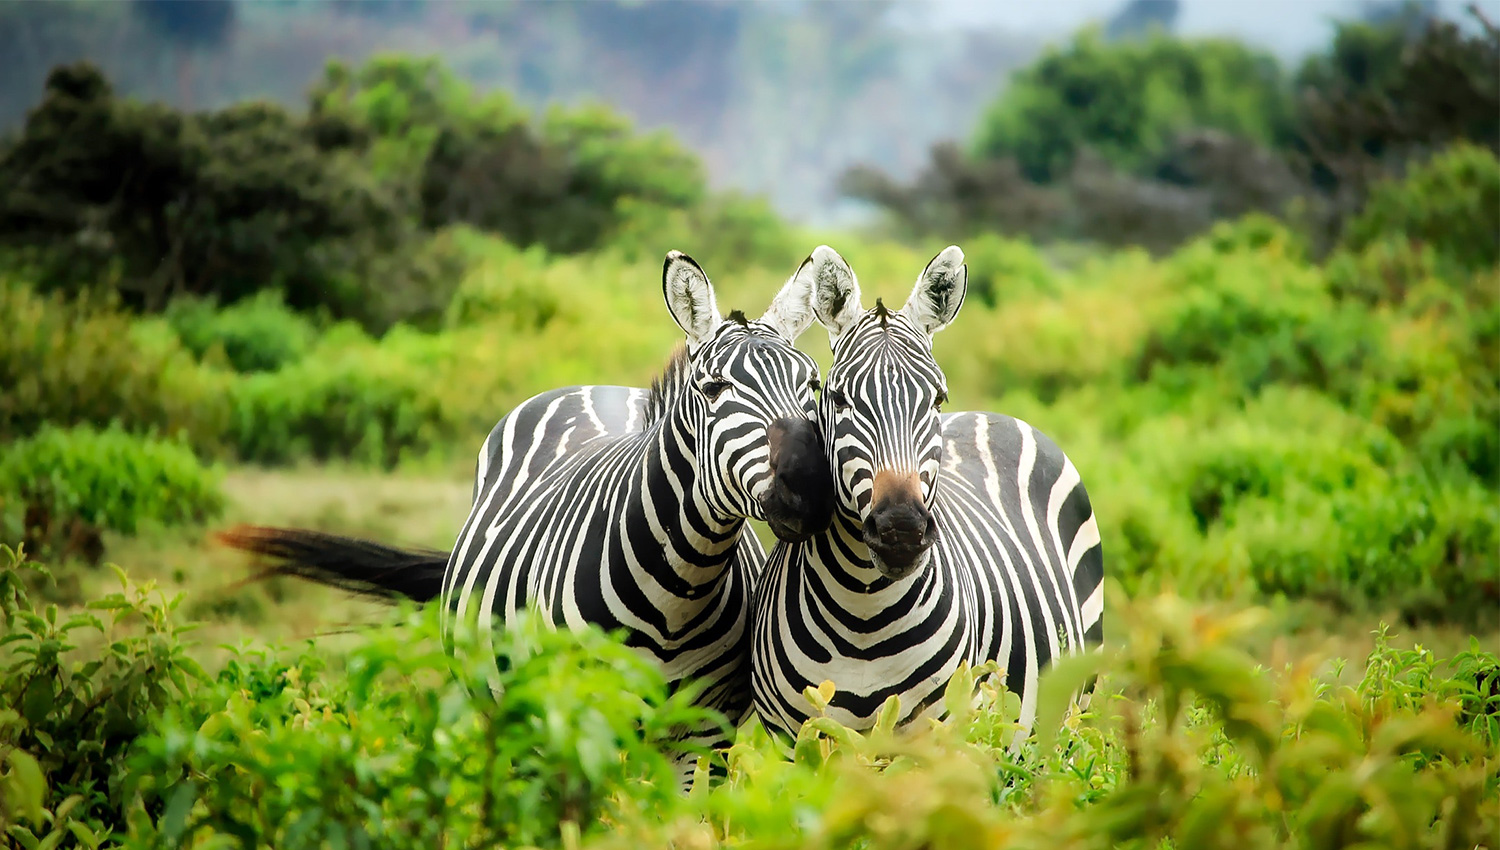 FIND YOUR SPECIAL TOUR TODAY WITH AFRICAN SAFARI AND PHOTO